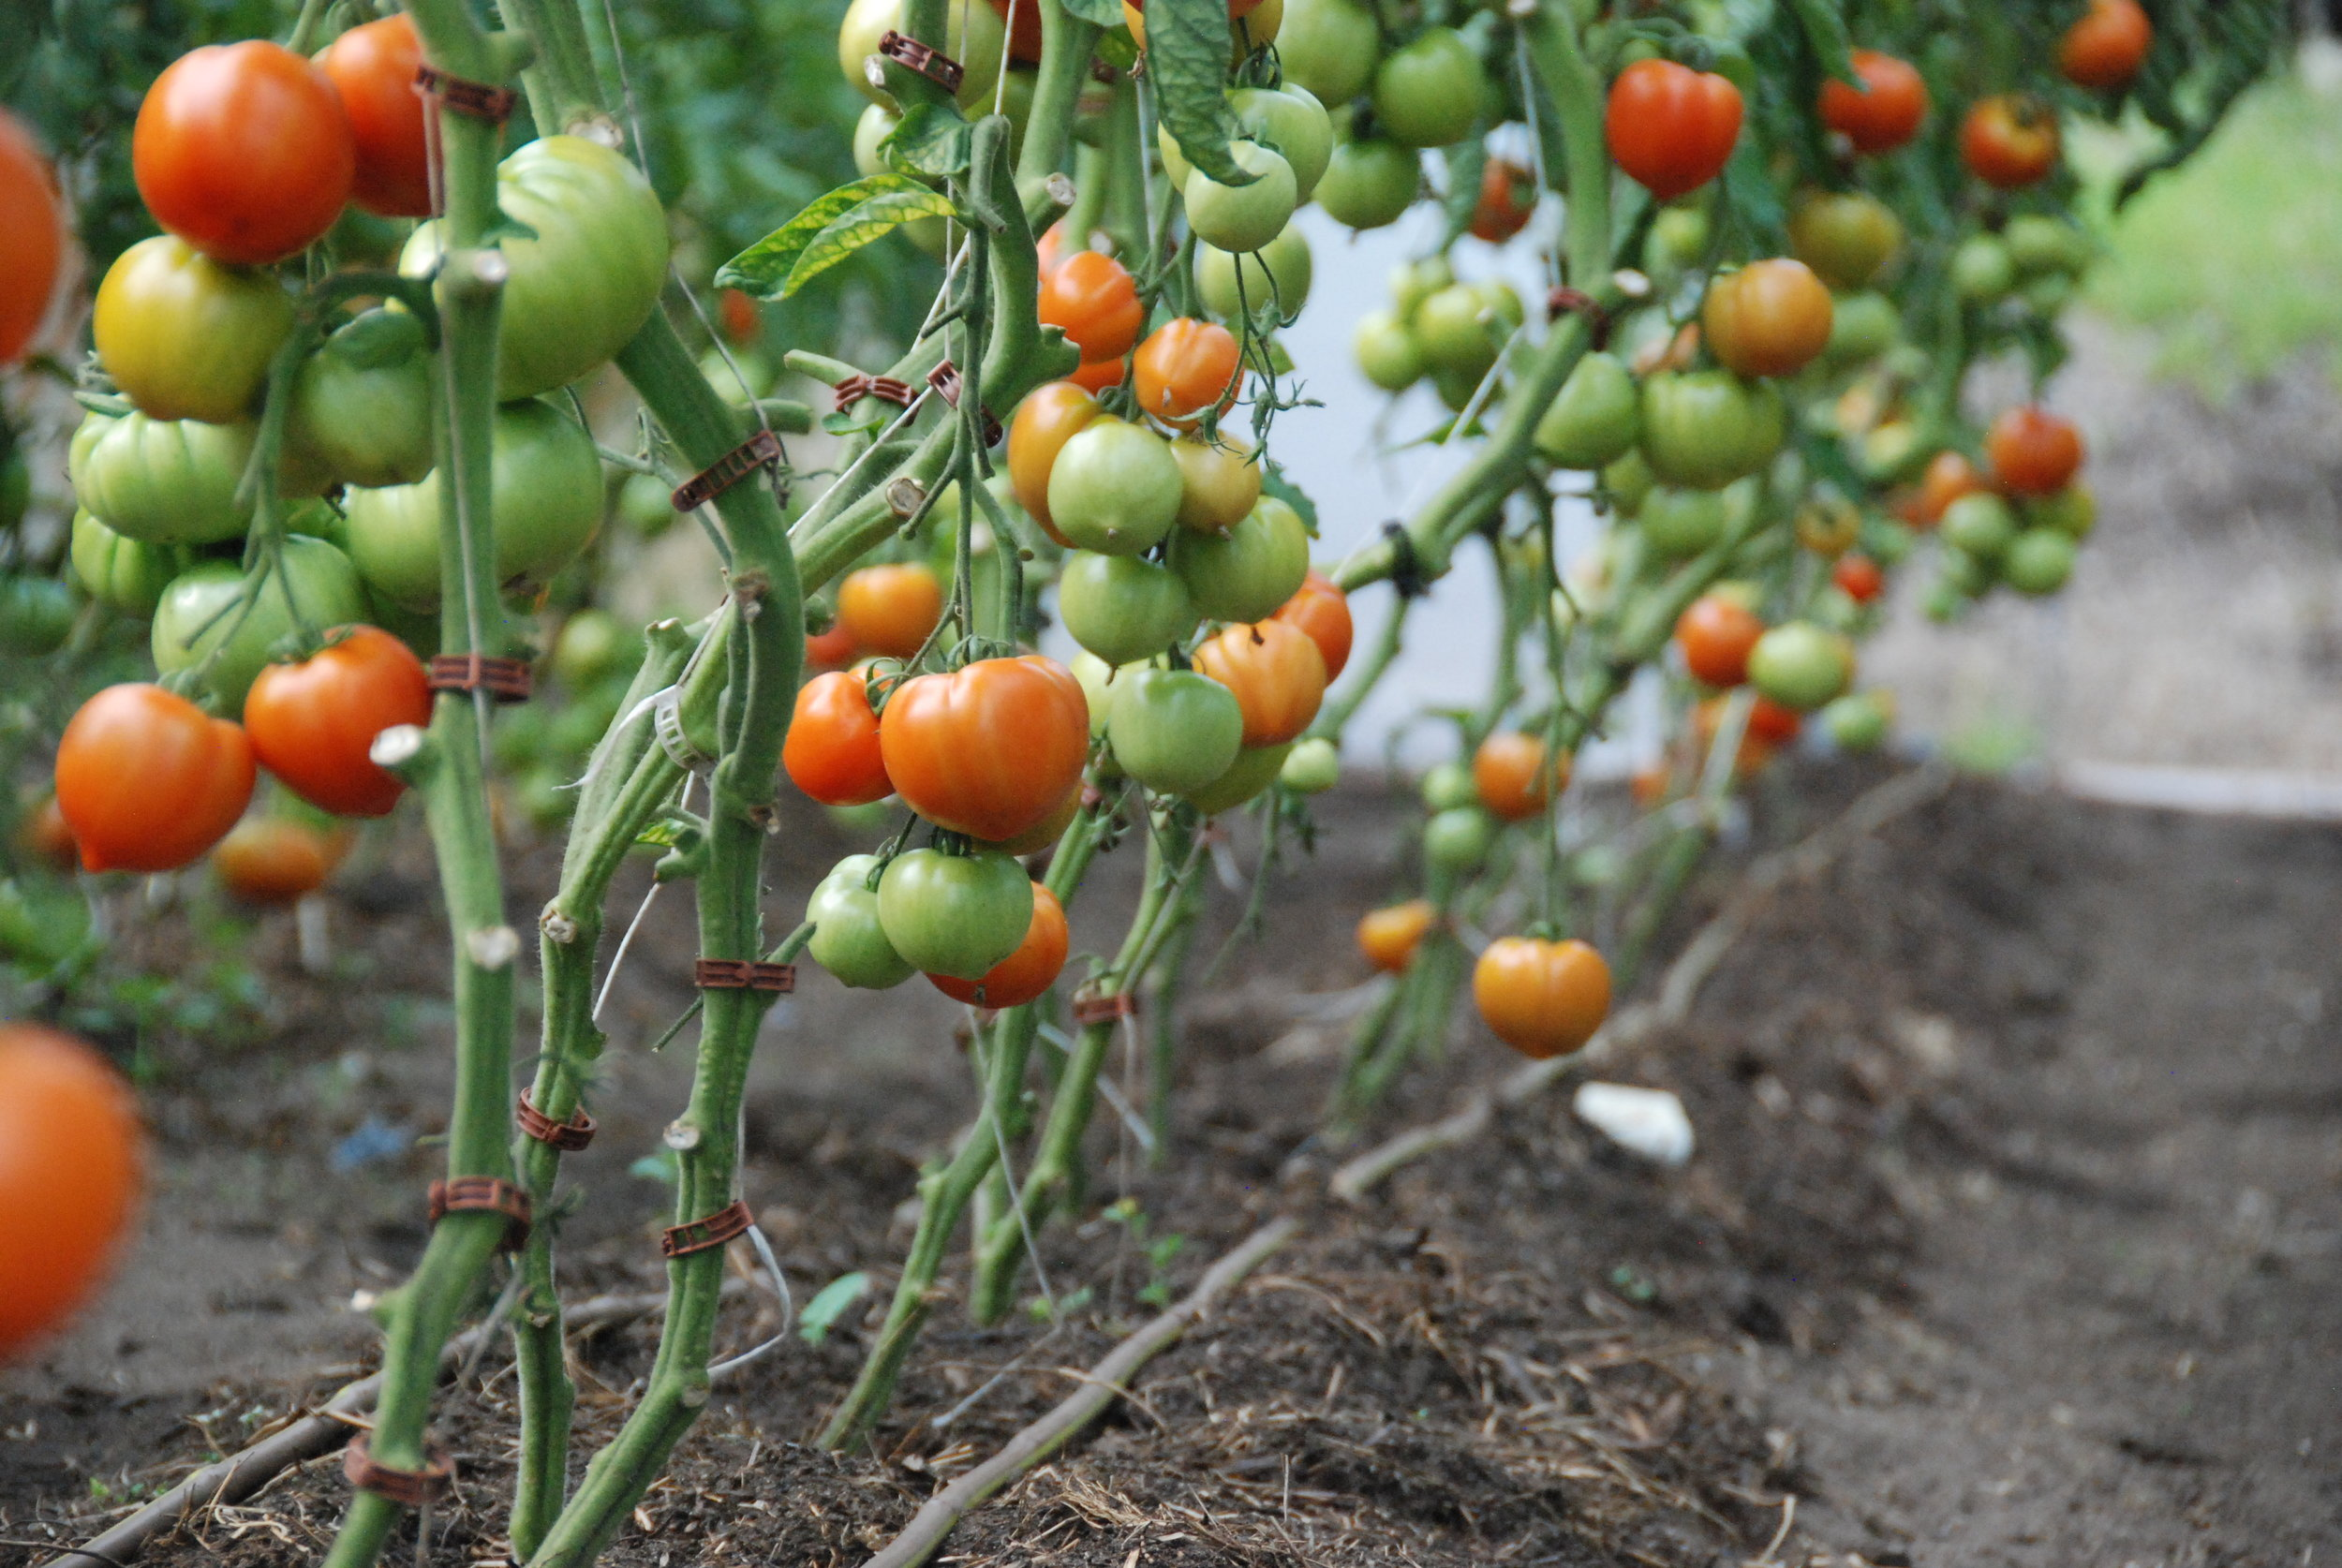 In the long days of summer, tomatoes ripen…